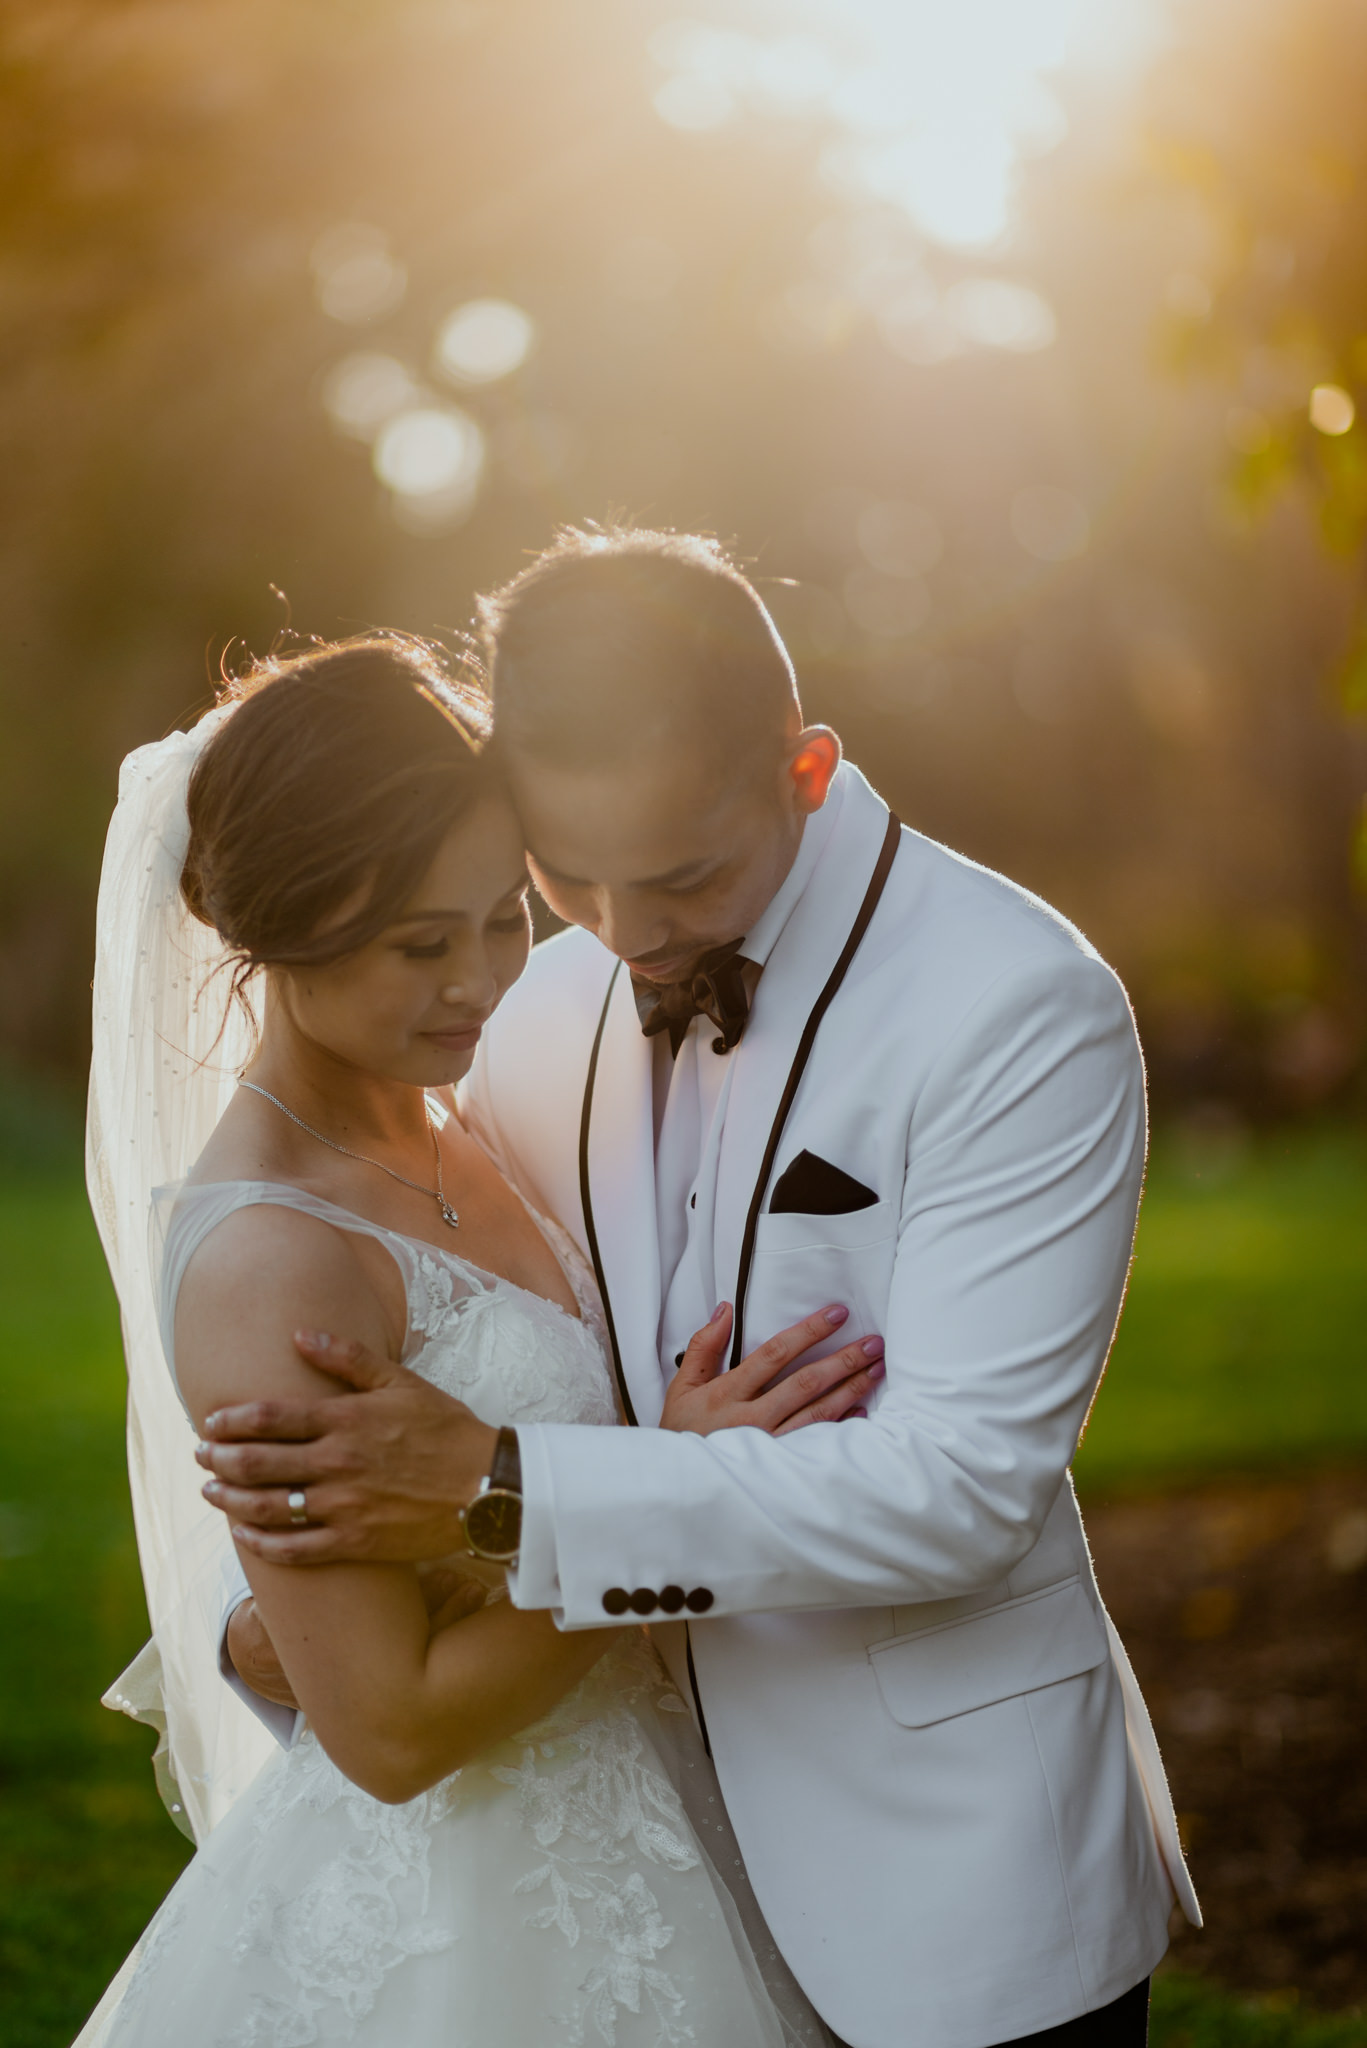 Groom embraces his wife emotionally in golden afternoon light